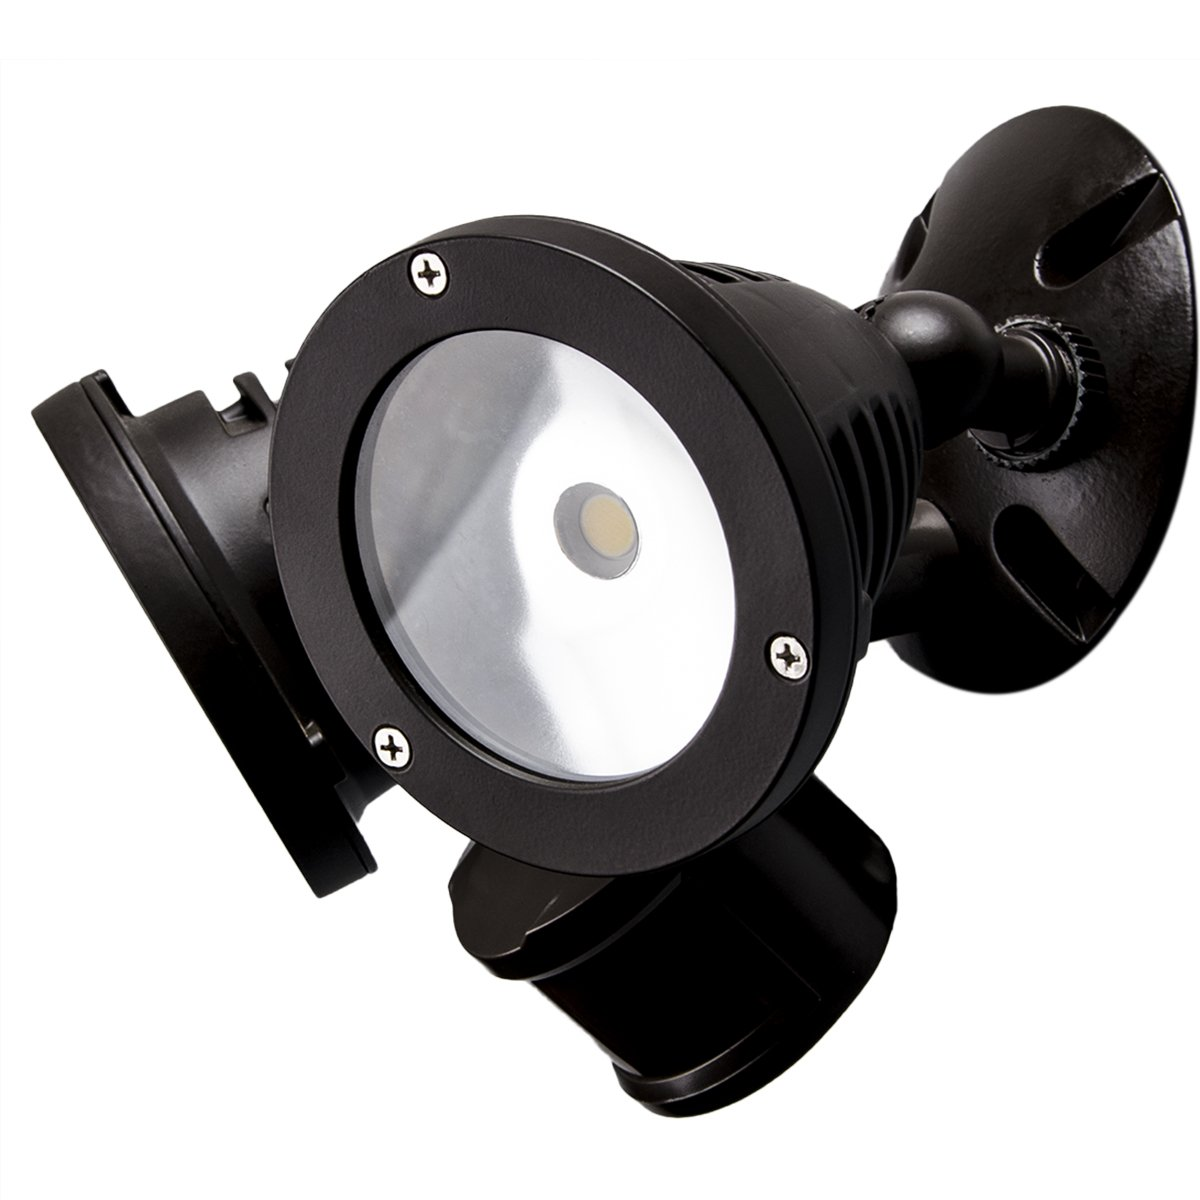 TOPELE Security Light, 2200LM Motion Sensor Outdoor Flood Light, Motion Activated Landscape Lighting, IP65 Waterproof, Adjustable Head with CREE LED Source for Home, Garden by TOPELE (Image #2)